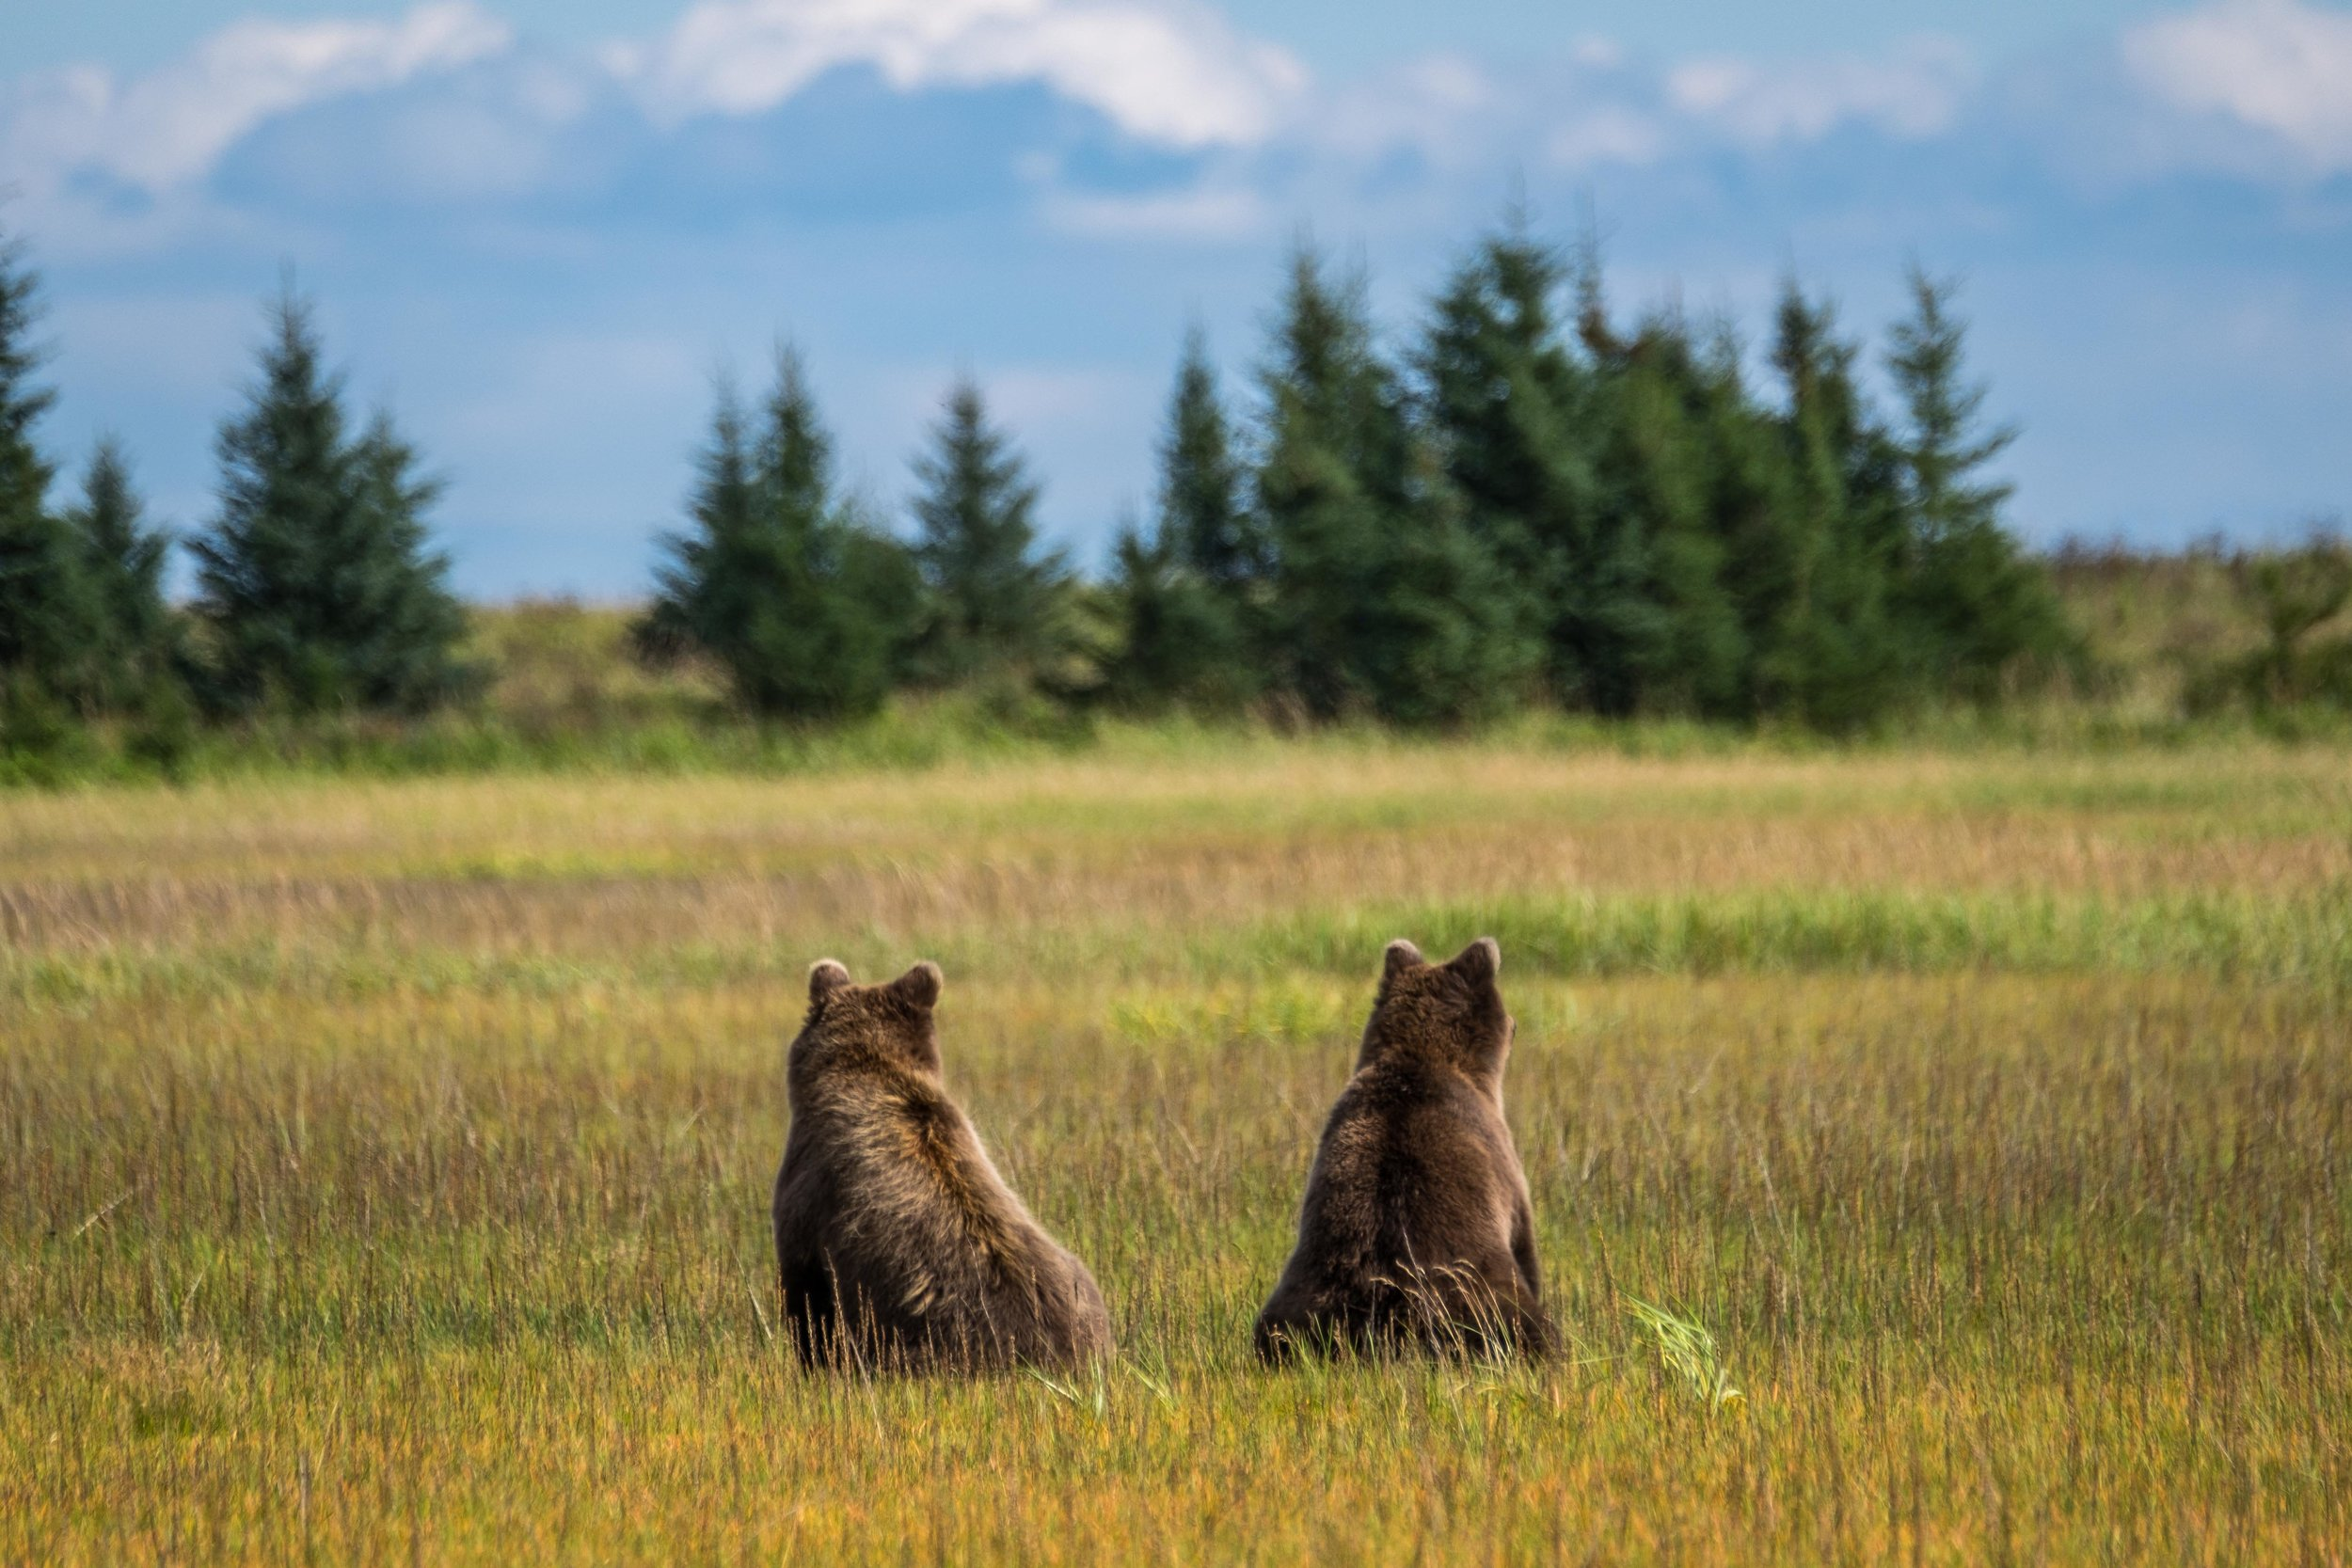 The two juveniles were lounging in the field right outside our lodge.